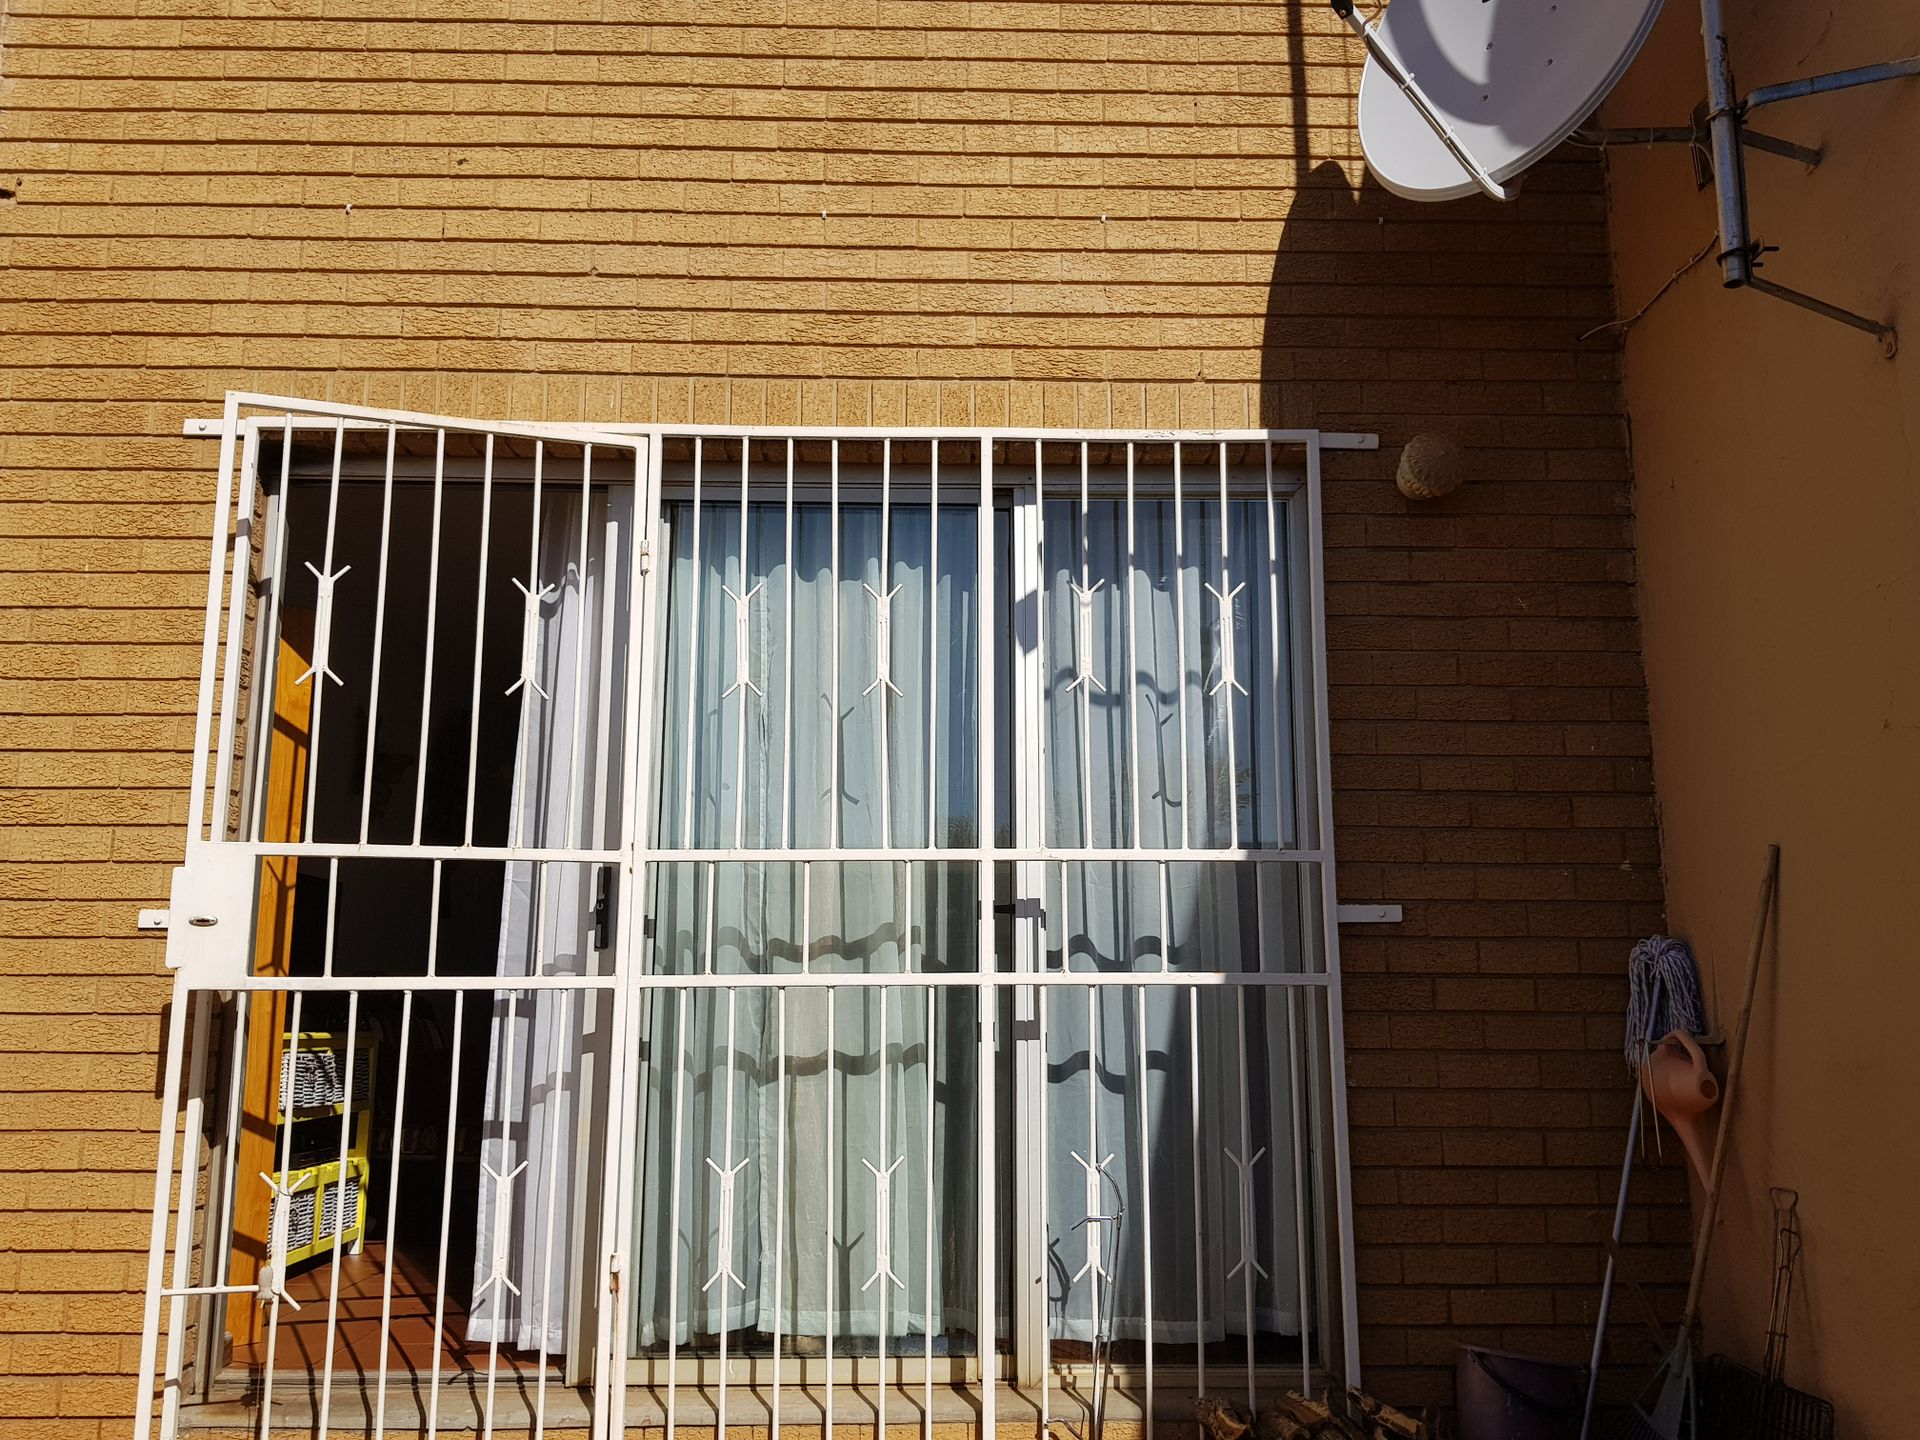 Potchefstroom Central for sale property. Ref No: 13498385. Picture no 5